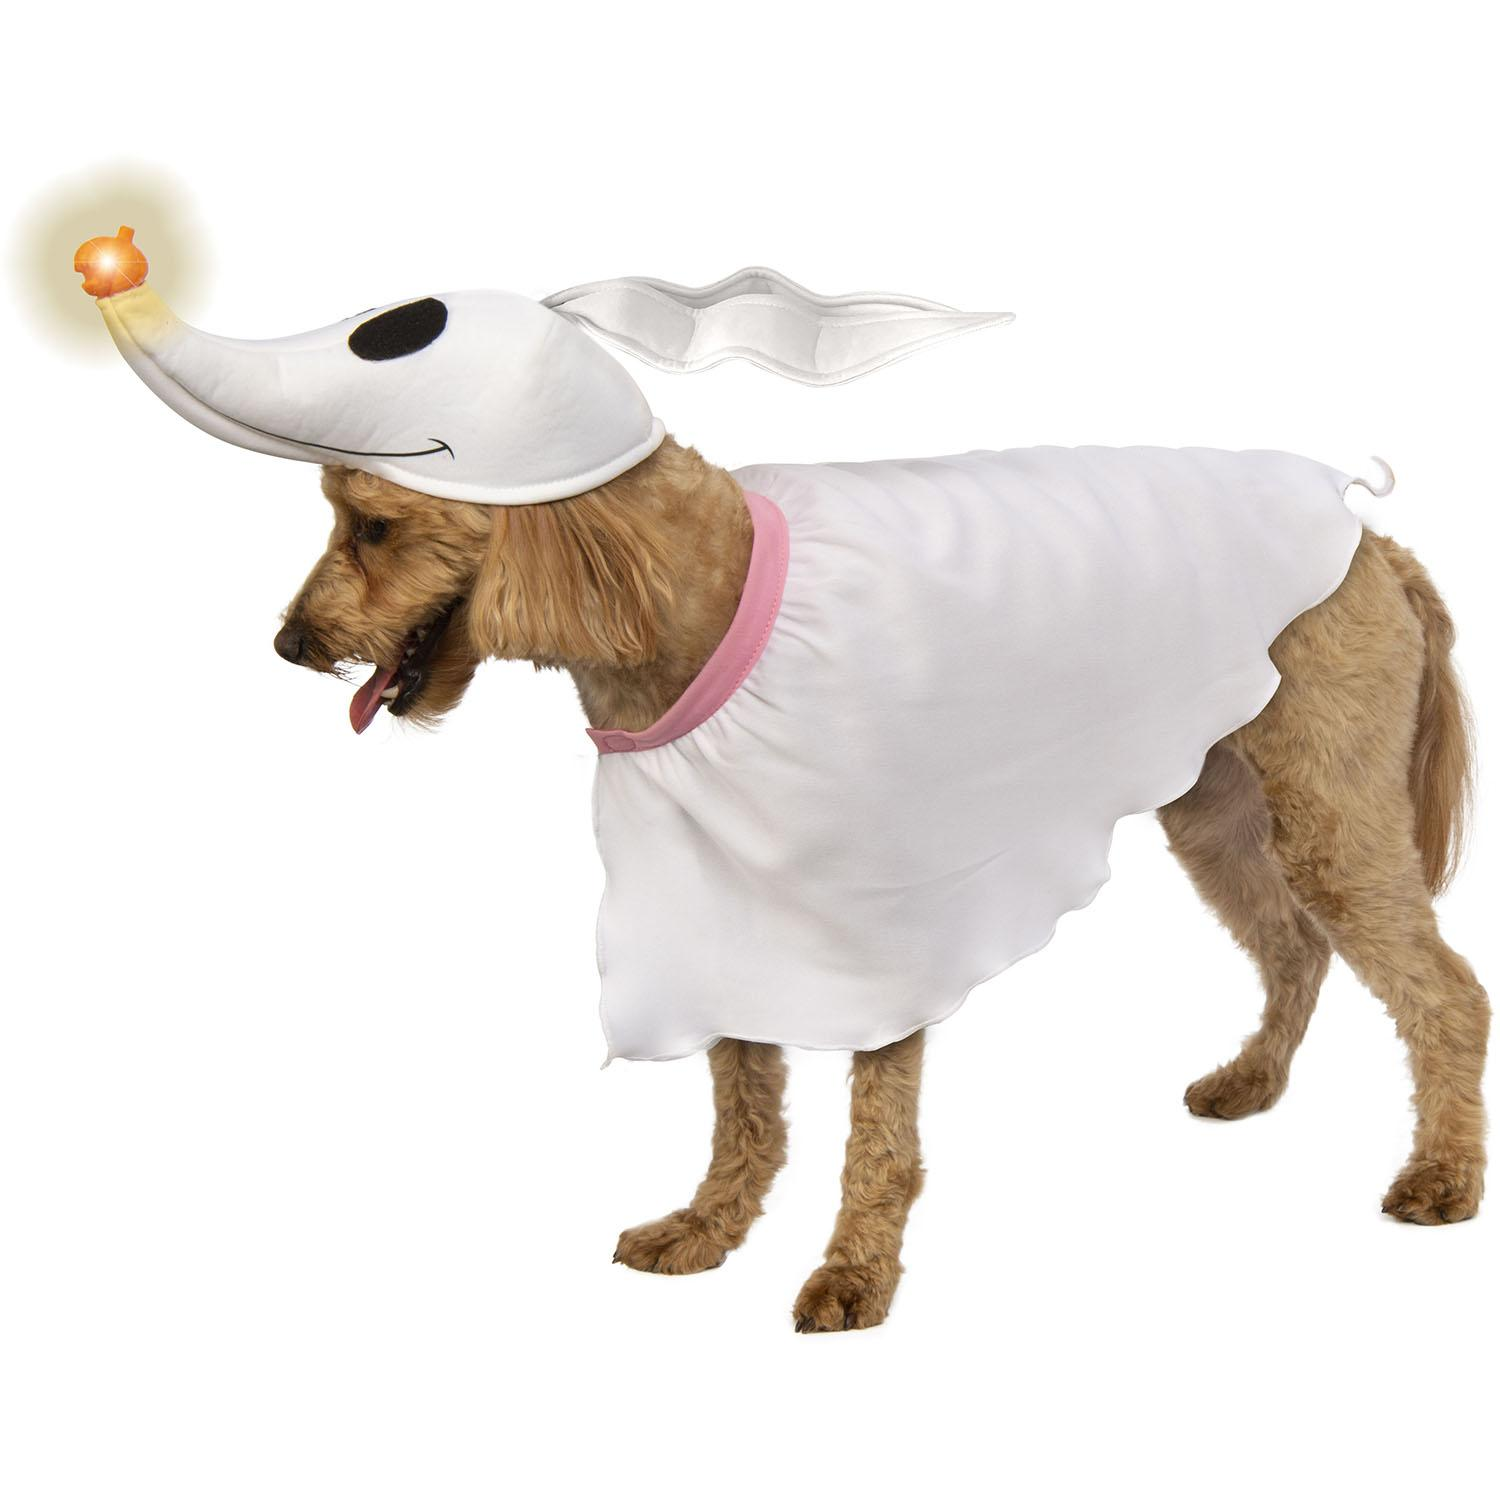 Nightmare Before Christmas Zero Dog Costume Baxterboo Captain marvel will be assigned several teams throughout the story (which allows for guest appearances, and i would even throw in guys like taskmaster who could be hired help) to go on government missions. baxterboo com